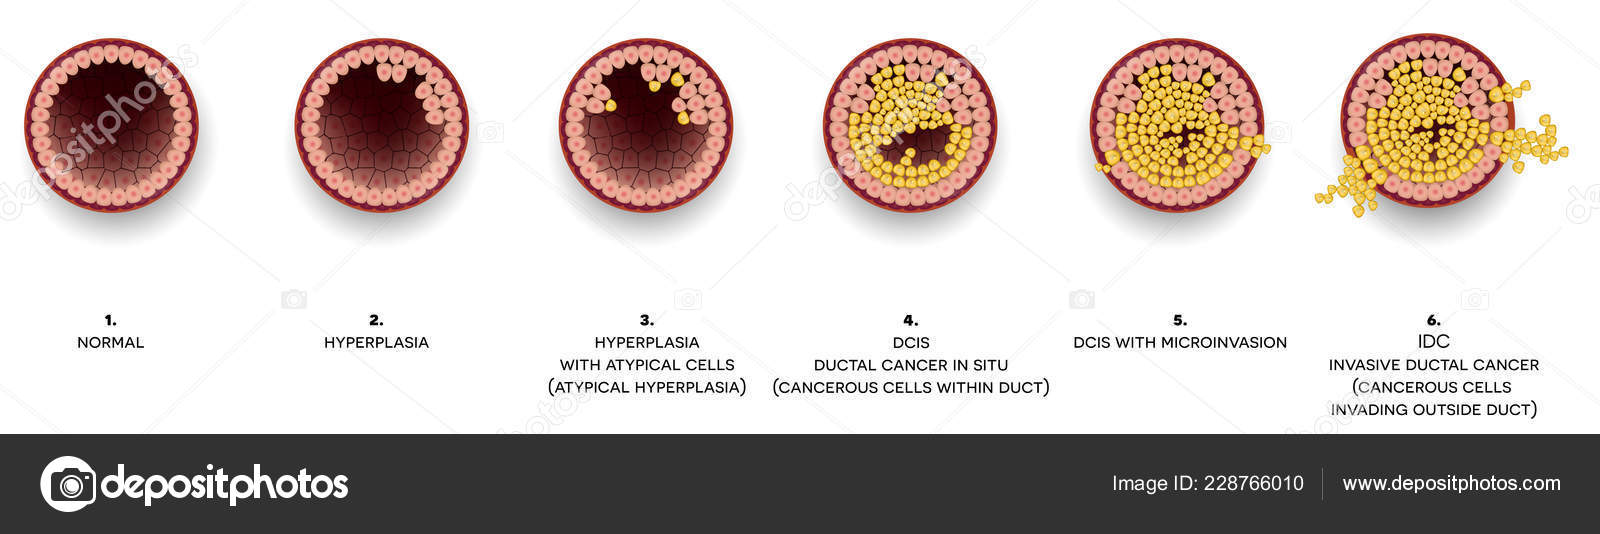 Breast Cancer Atypical Cells - Porn Archive-1434